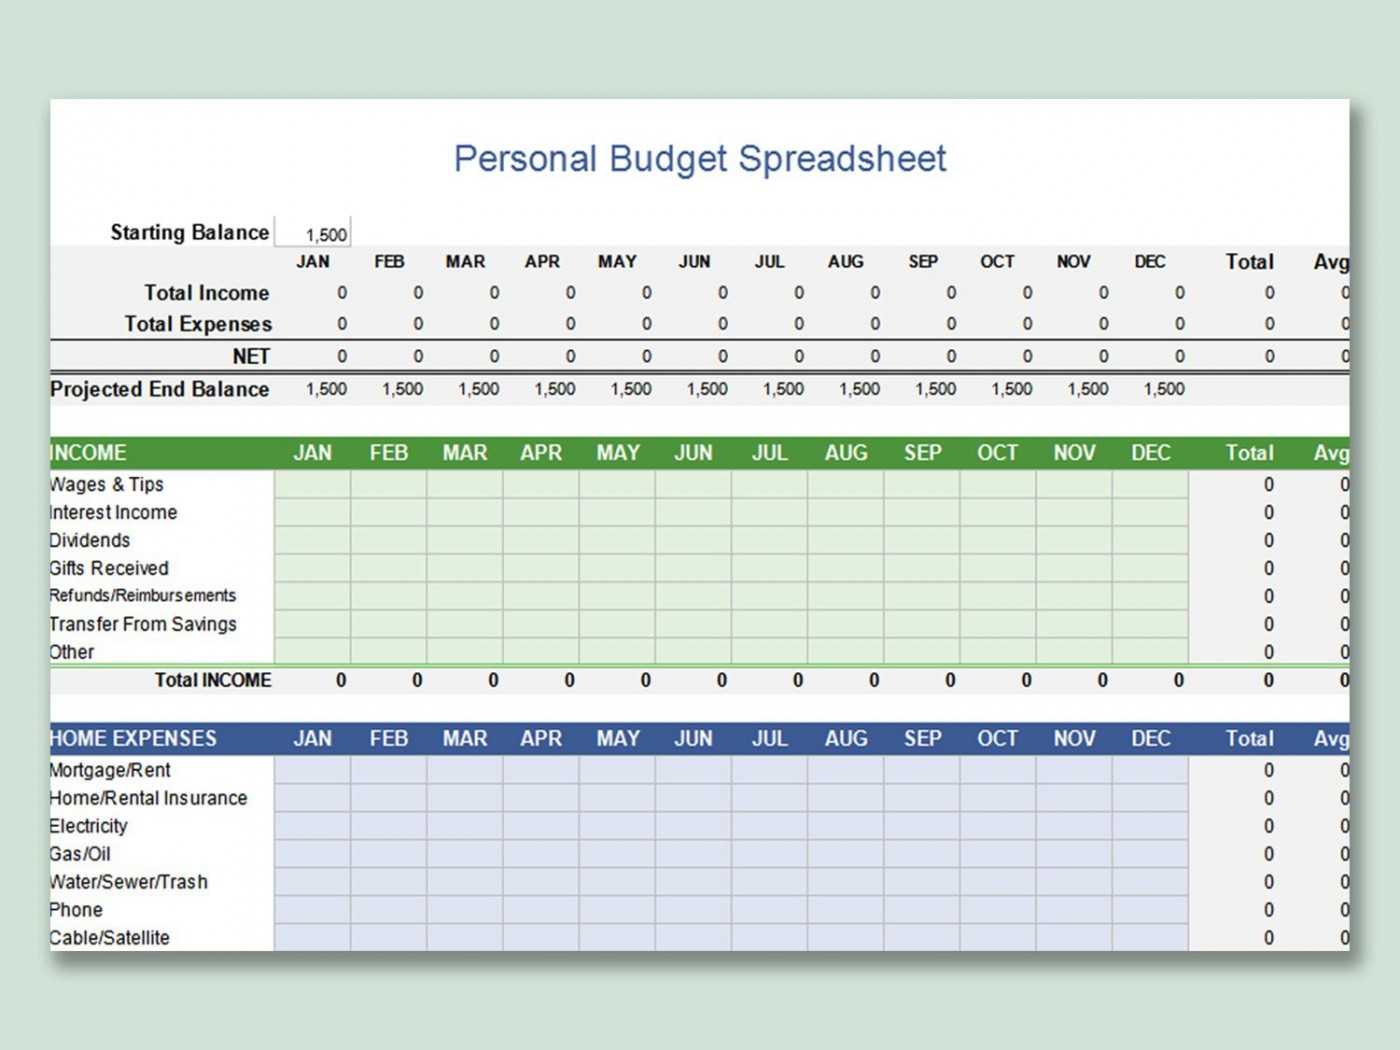 000 Awful Personal Budget Spreadsheet Template For Mac Idea 1400